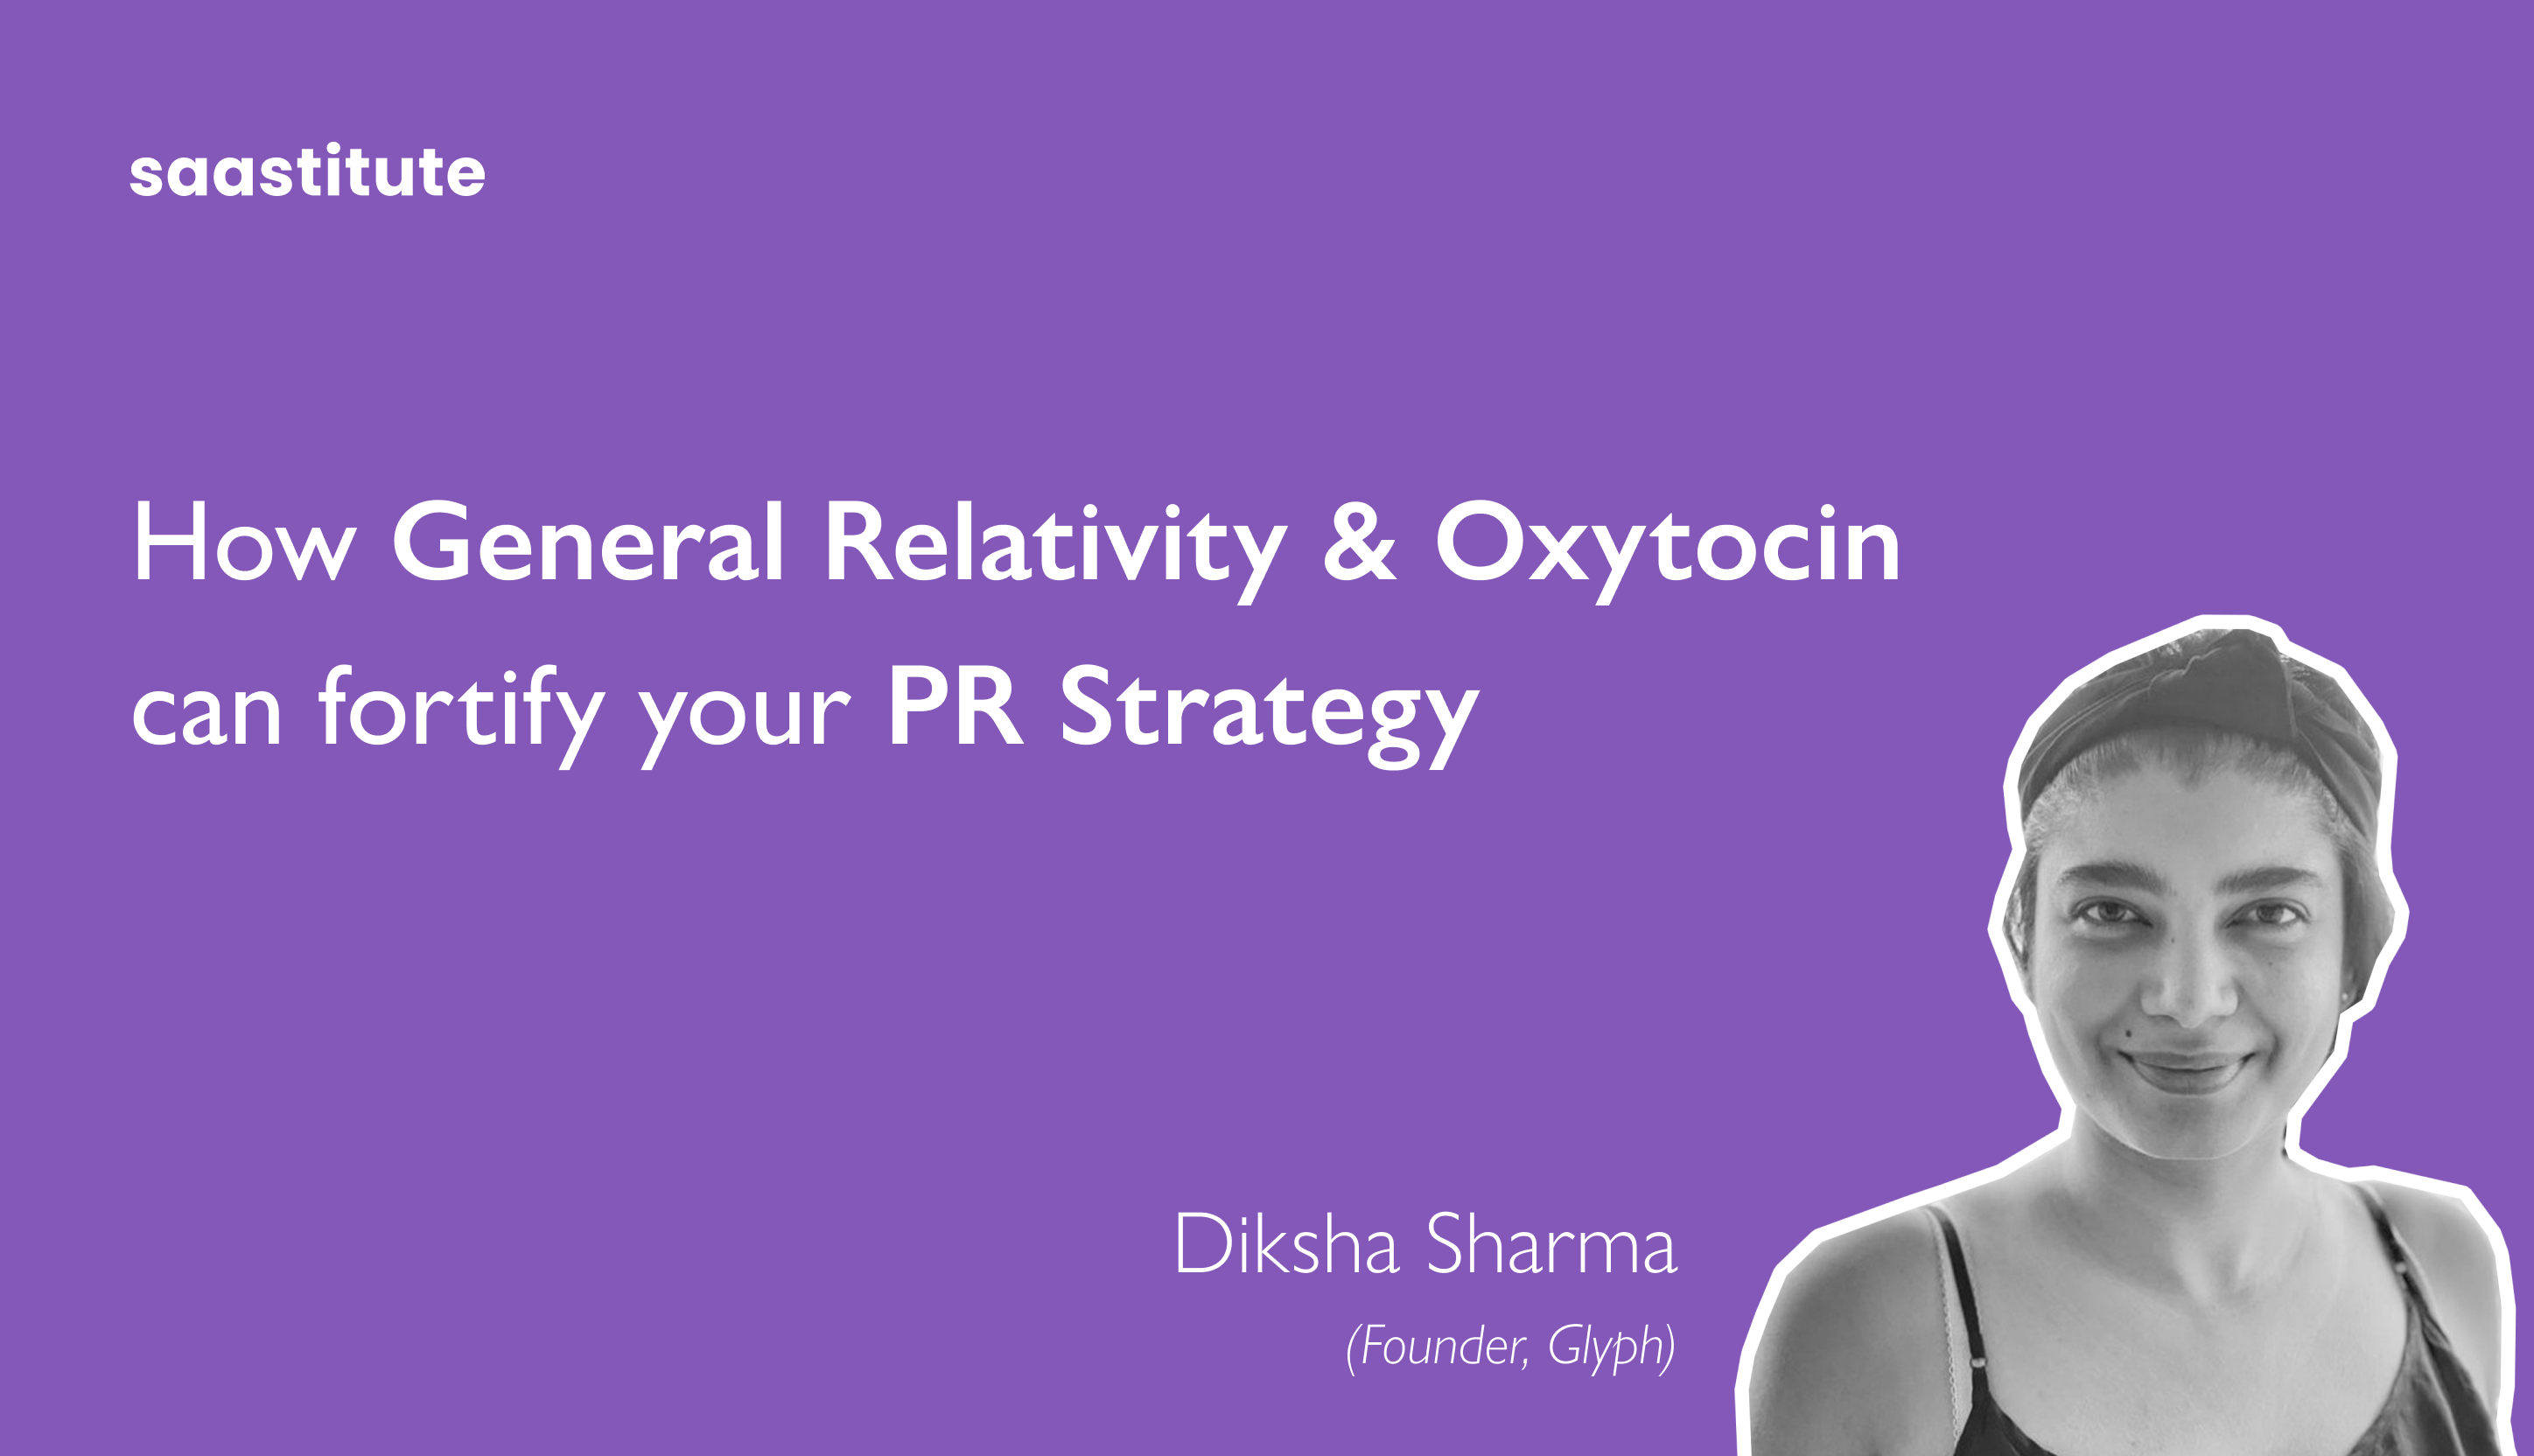 Diksha Sharma on how to build effective PR strategy for business- Saastitute